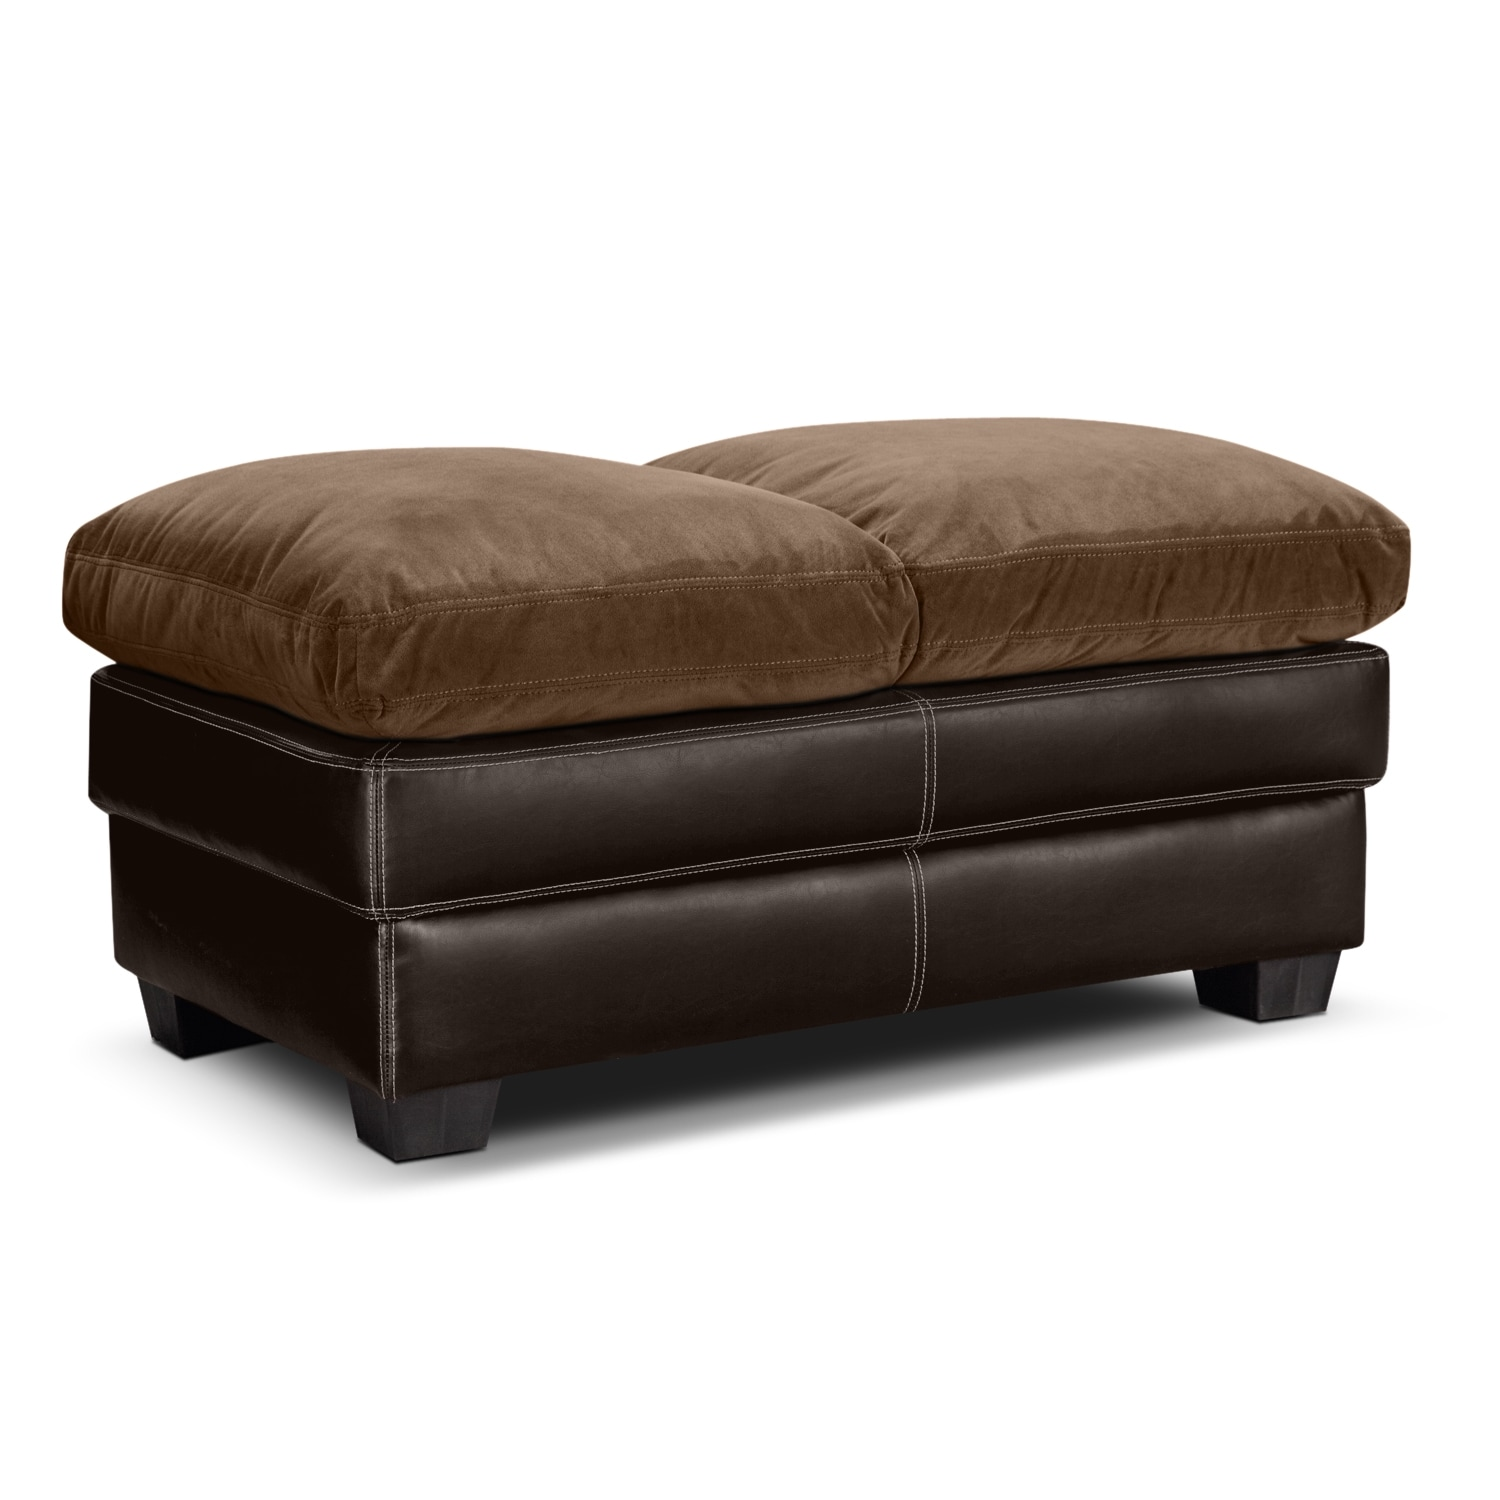 Living Room Furniture - Chandler Beige Cocktail Ottoman